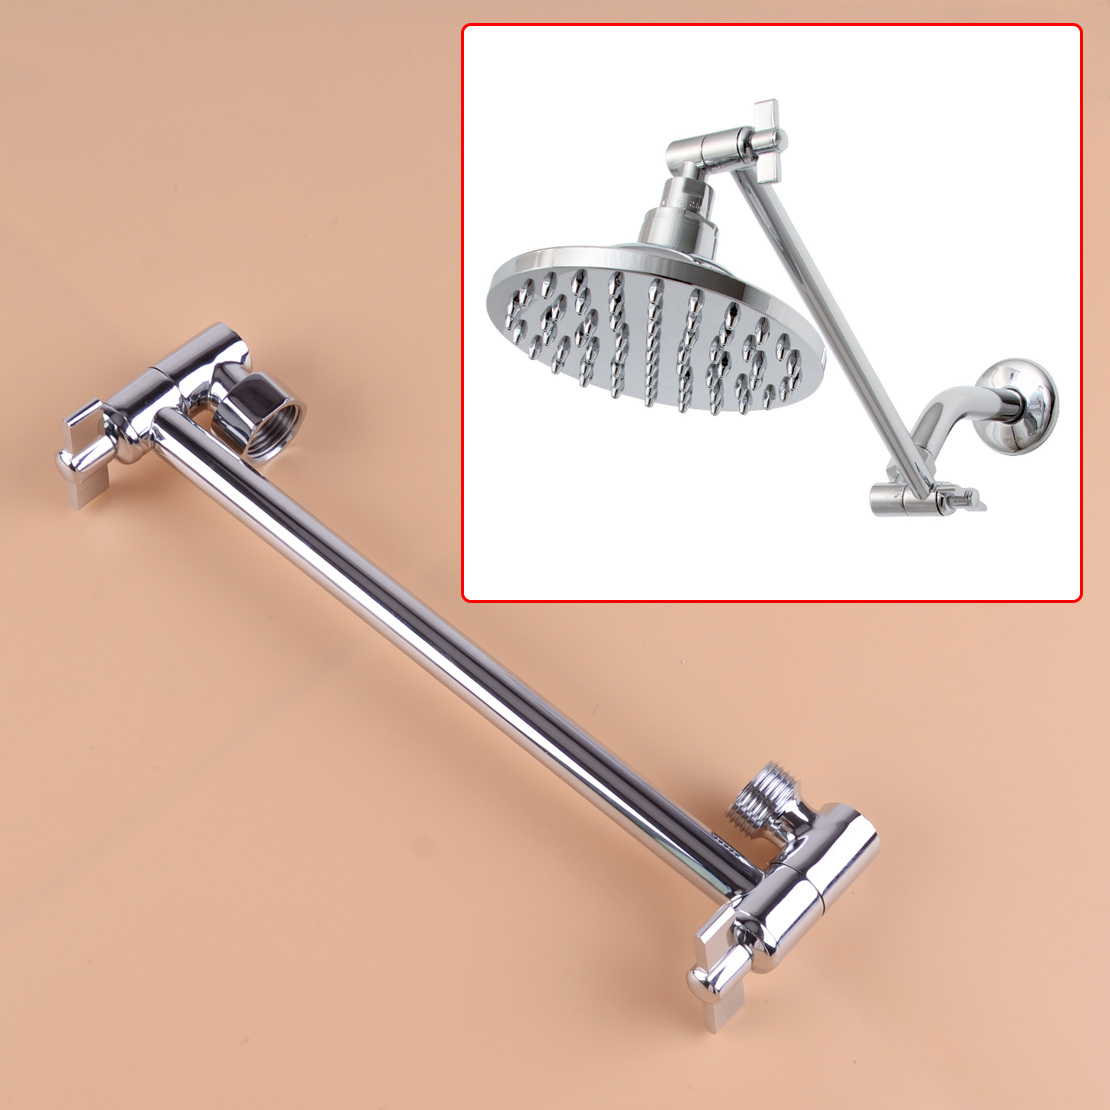 Rod Extension Shower-Head Wall-Mounted Adjustable for Universally Connecting Rotate-Joint